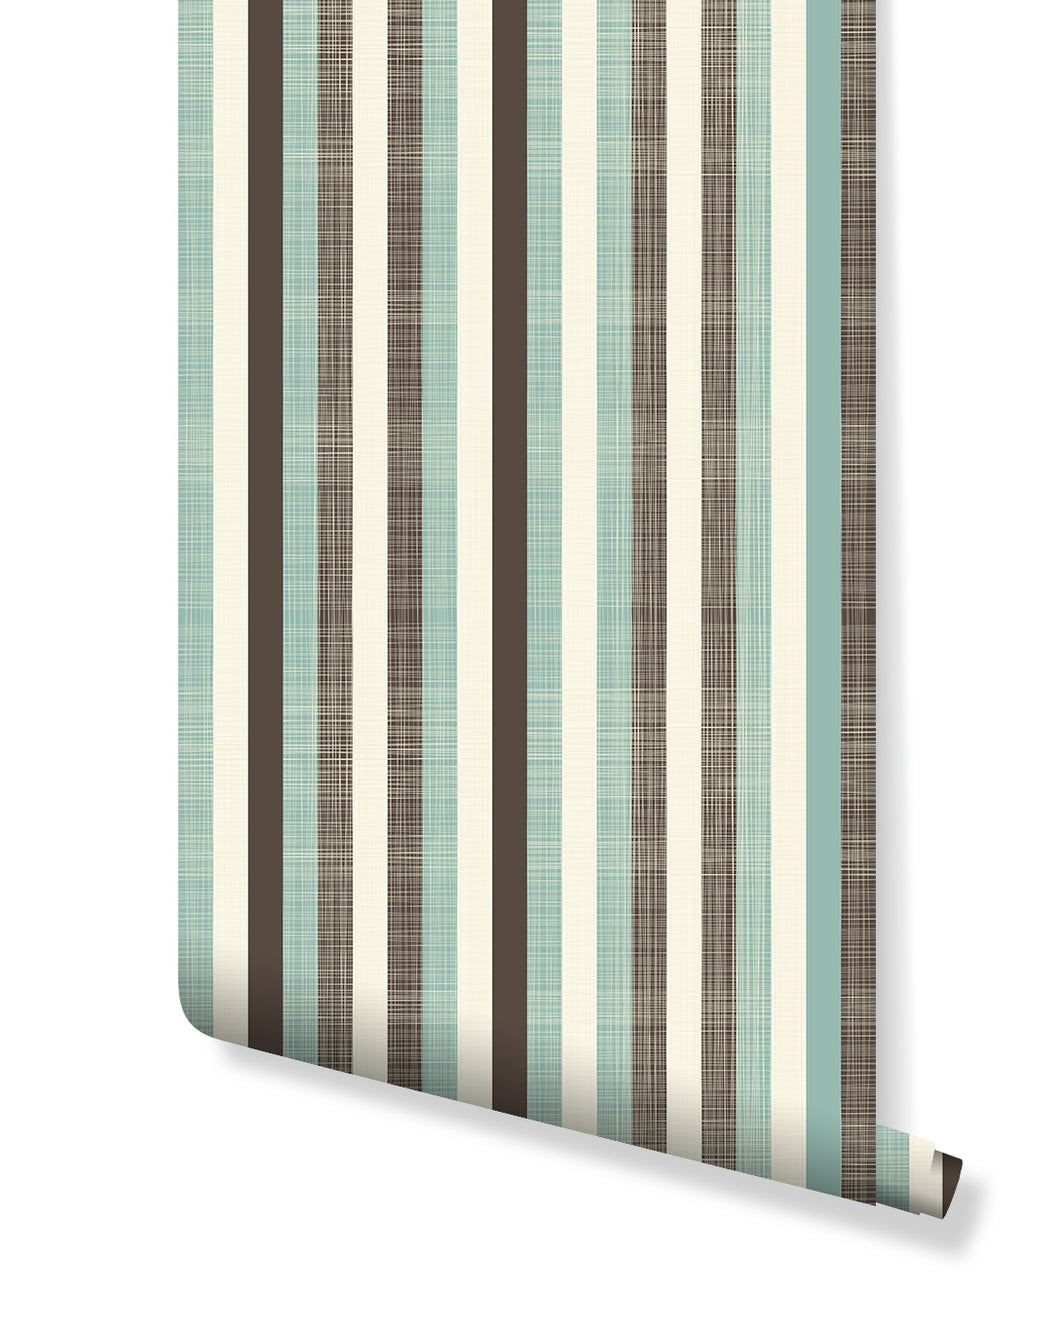 Temporary Self Adhesive Removable Wallpaper with Geometric Abstract Classic Lines, Great for Home Improvement Wall Decor CC167